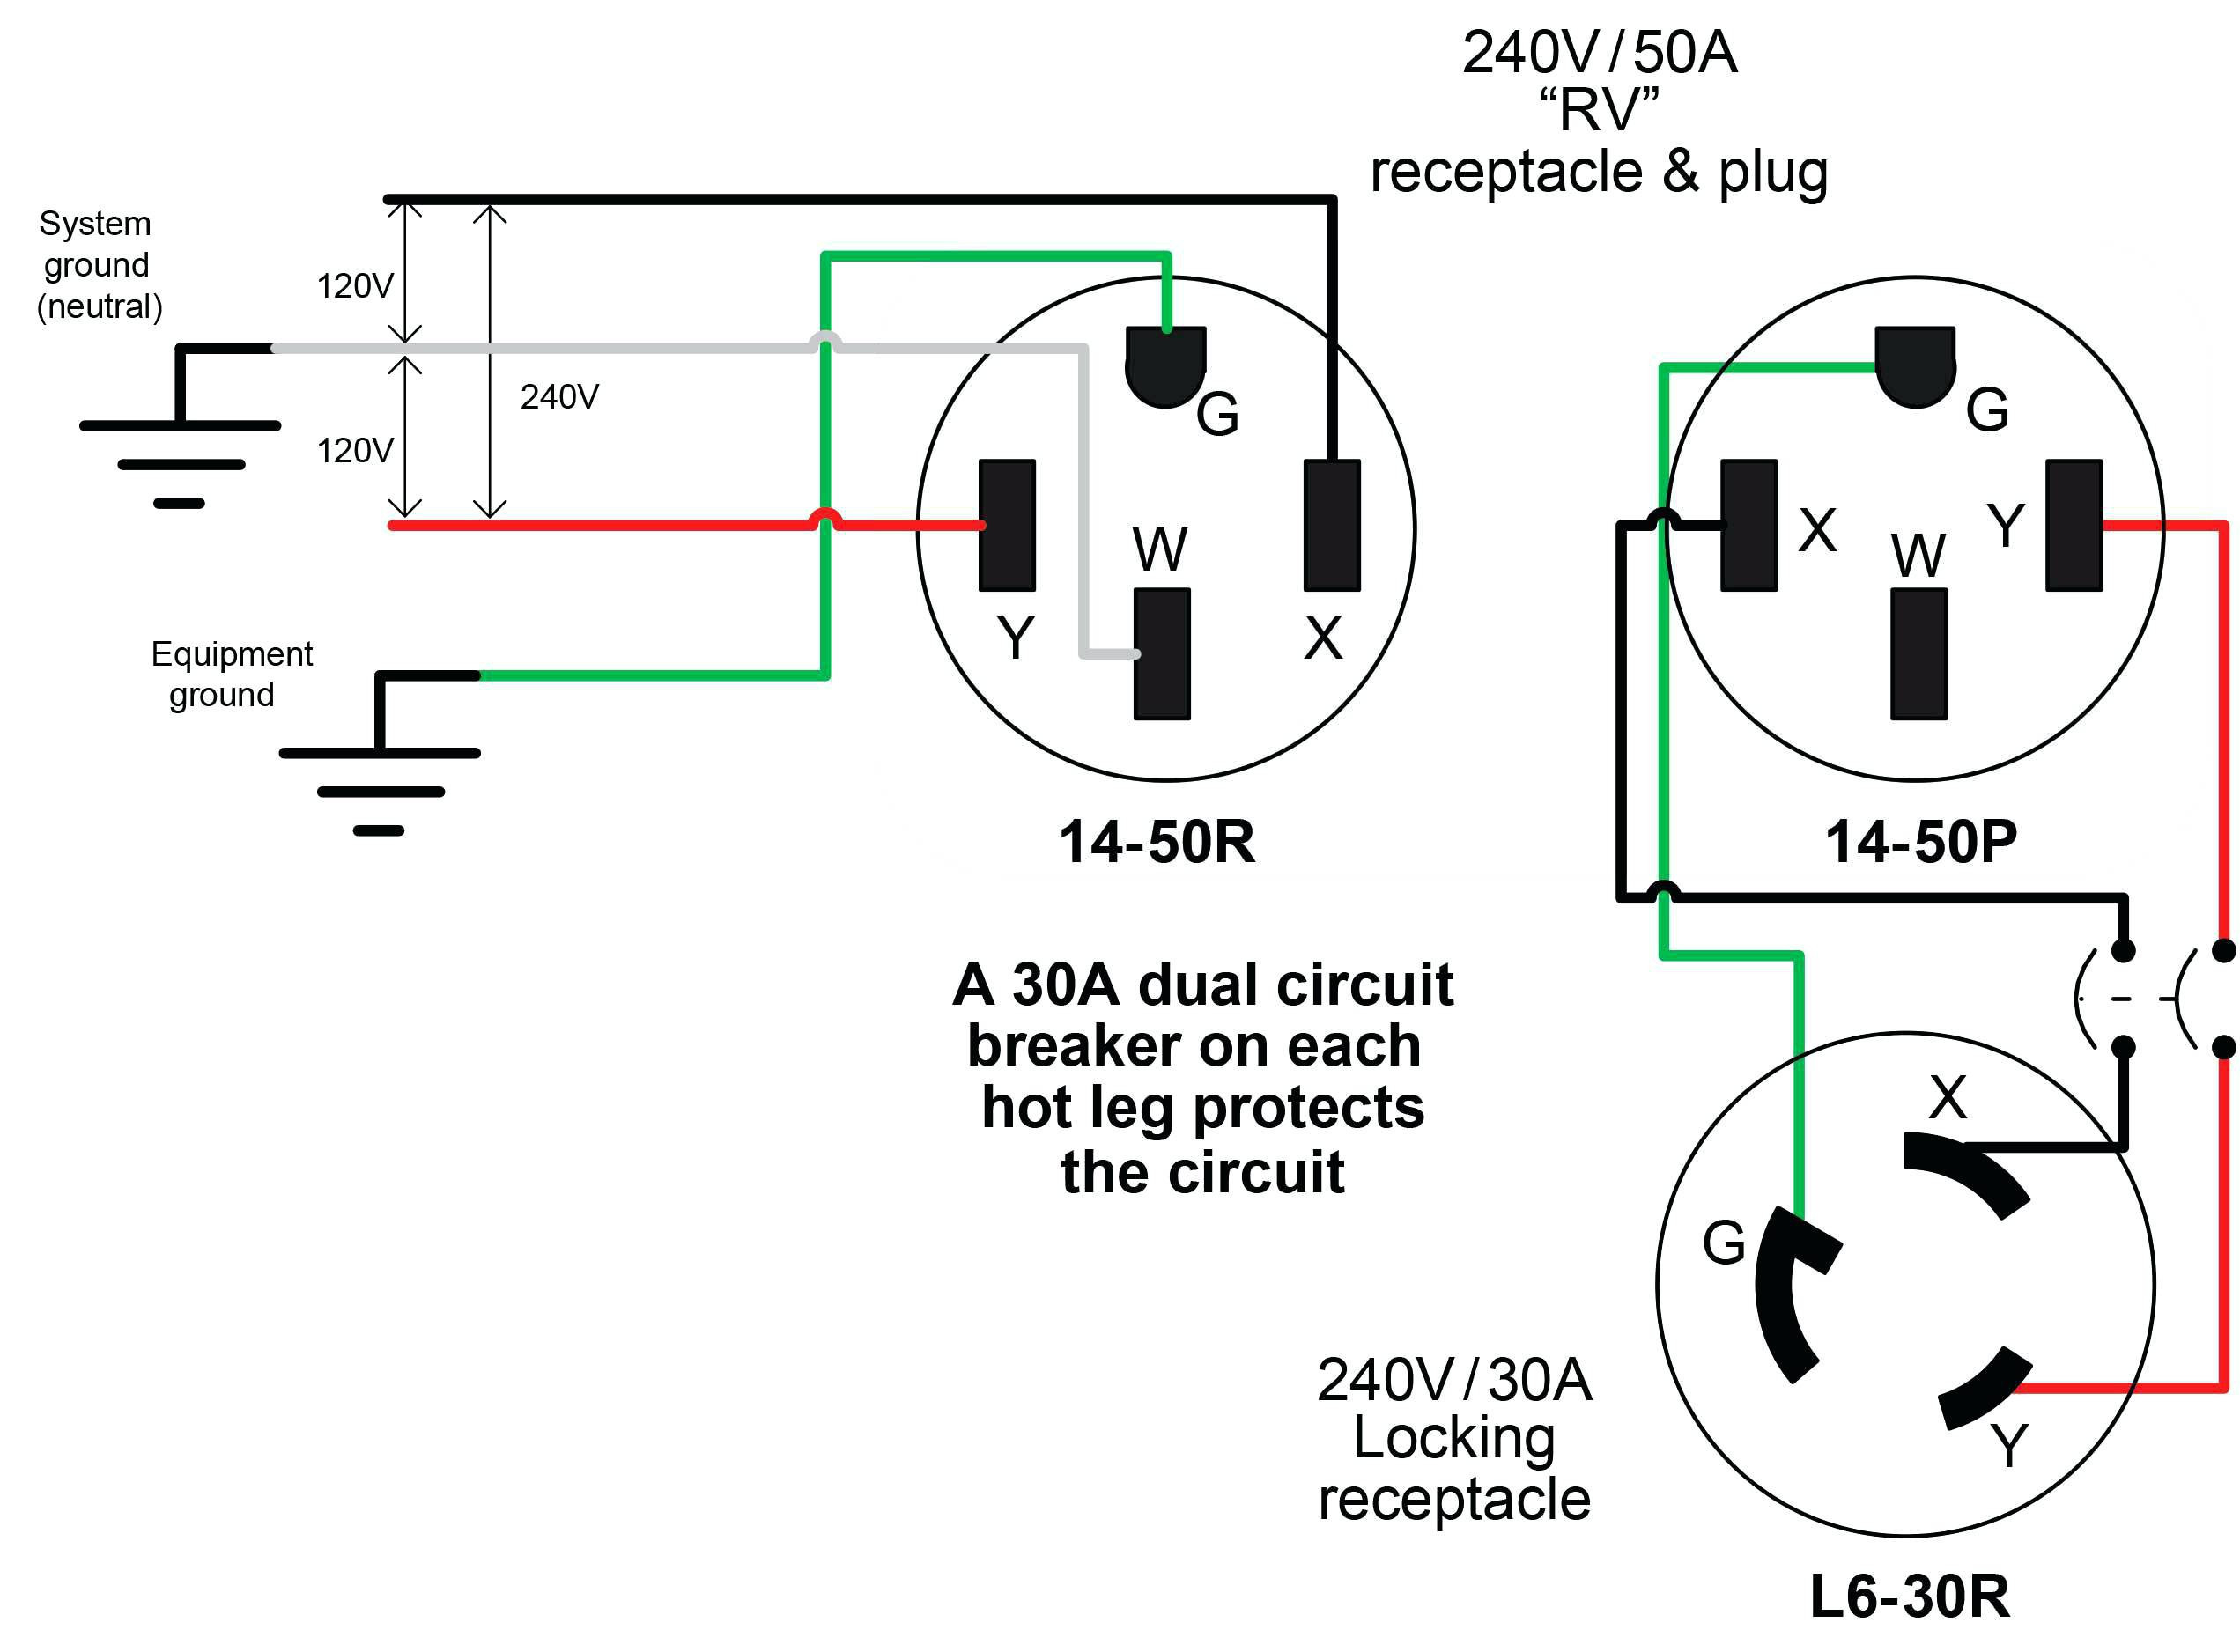 va_7414] 240 vac plug wiring diagram on wiring plug to extension cord  schematic wiring  unho wedab mohammedshrine librar wiring 101